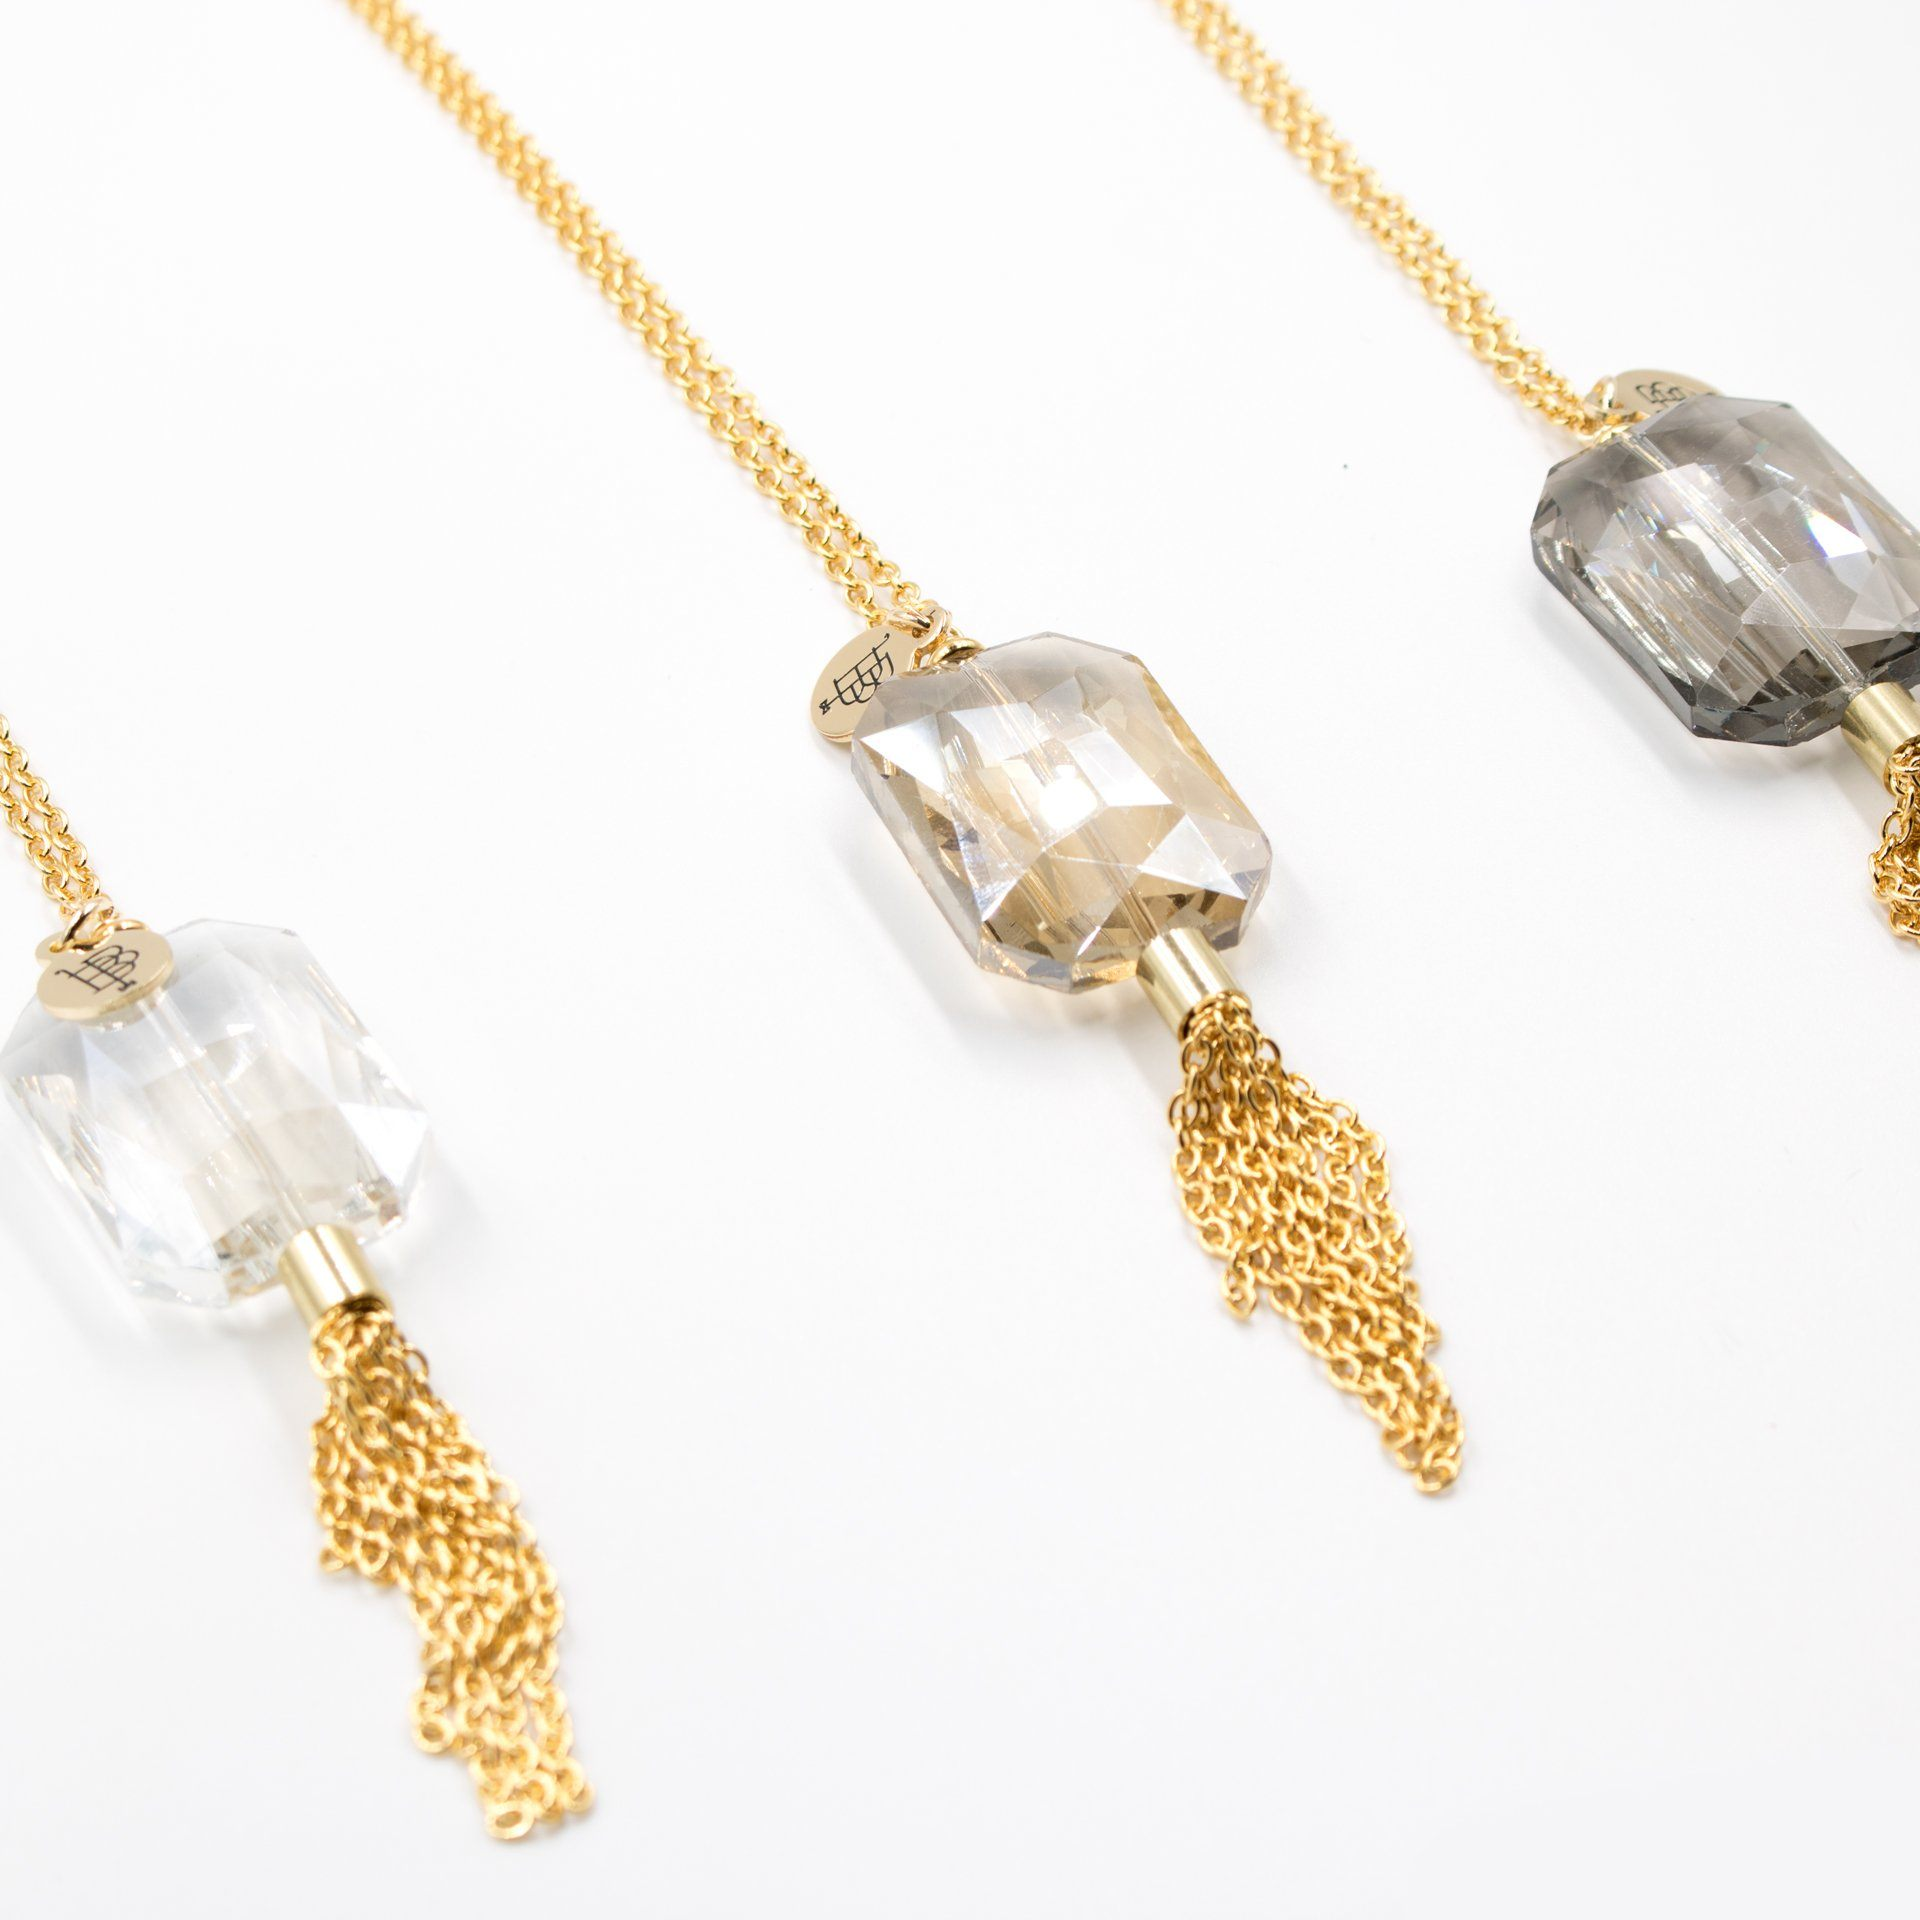 Iridescent Tassel Necklace (3 Variations) - Arlo and Arrows